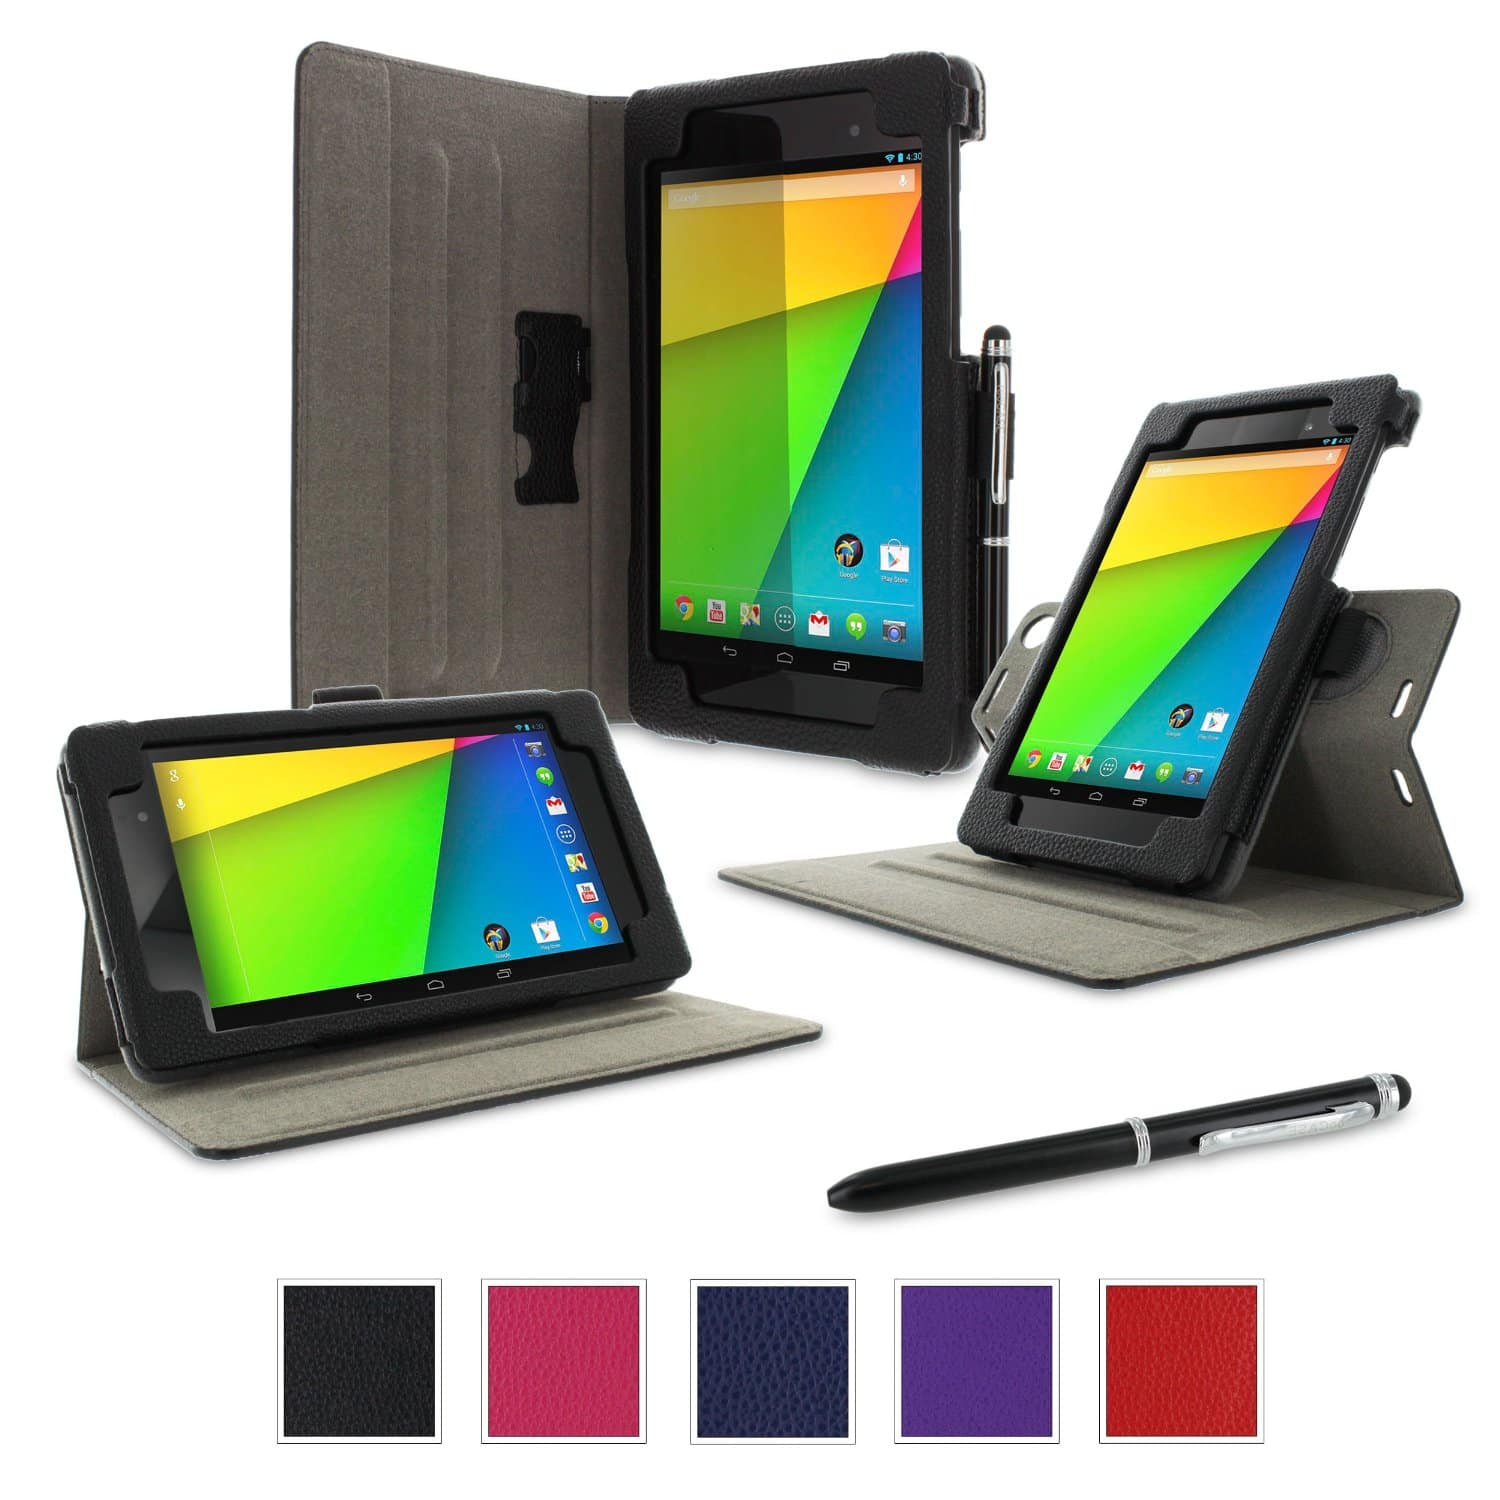 RooCASE Nexus 7 2013 Cases: Origami Slim Shell + Dual-View Multi-angle Stand Case $10.98 w/ Free Shipping w/ Prime or $35+